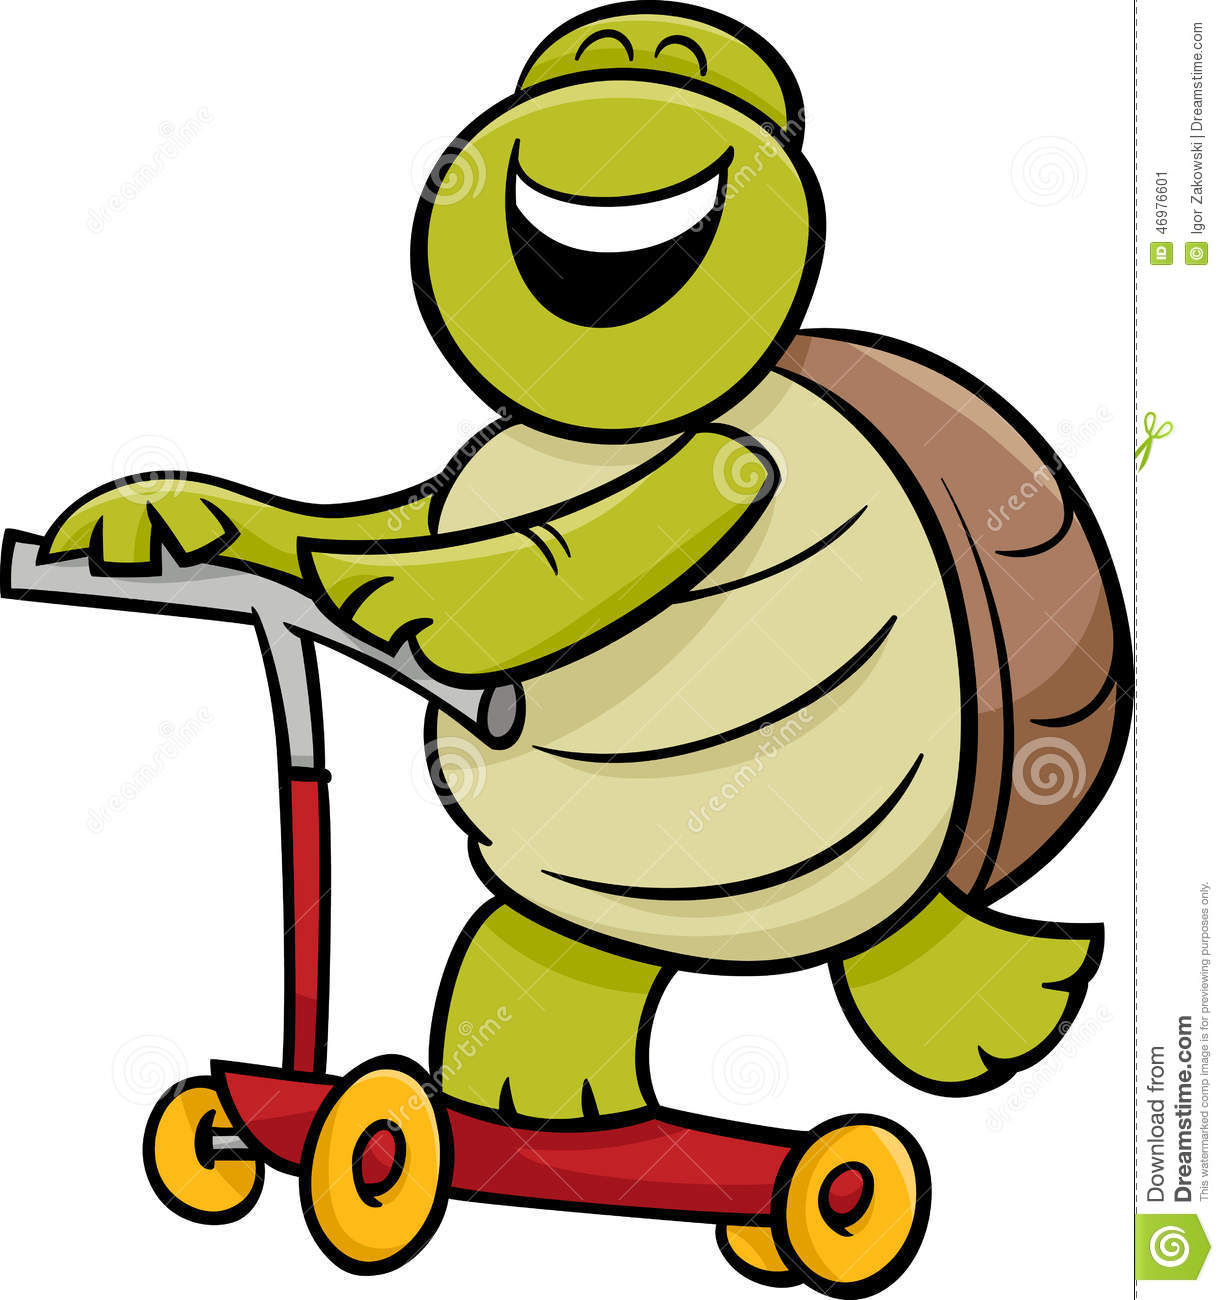 Turtle On Scooter Cartoon Illustration Stock Vector - Image: 46976601